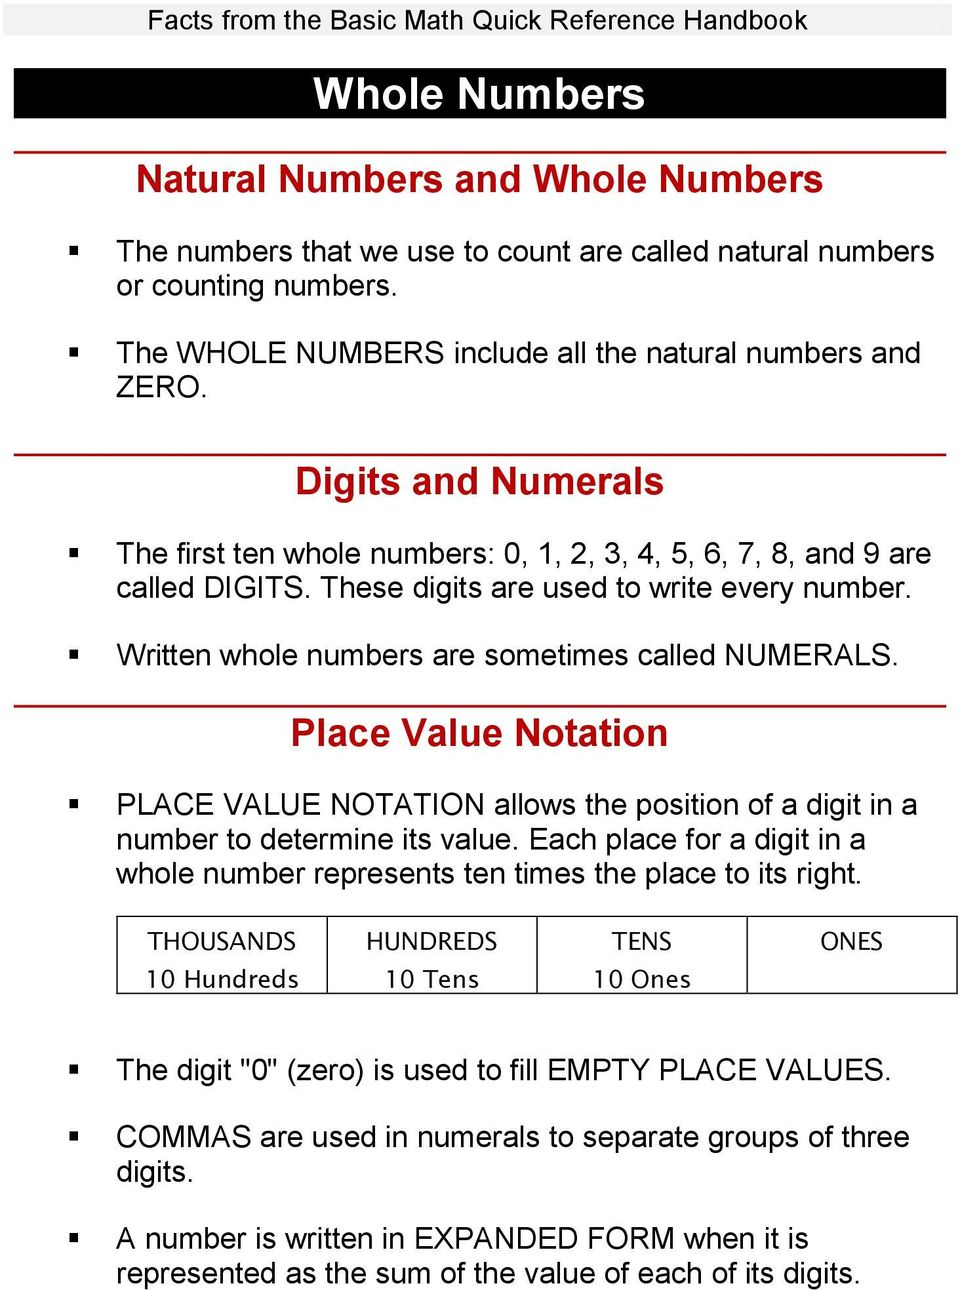 Place Value Notation PLACE VALUE NOTATION allows the position of a digit in a number to determine its value. Each place for a digit in a whole number represents ten times the place to its right.